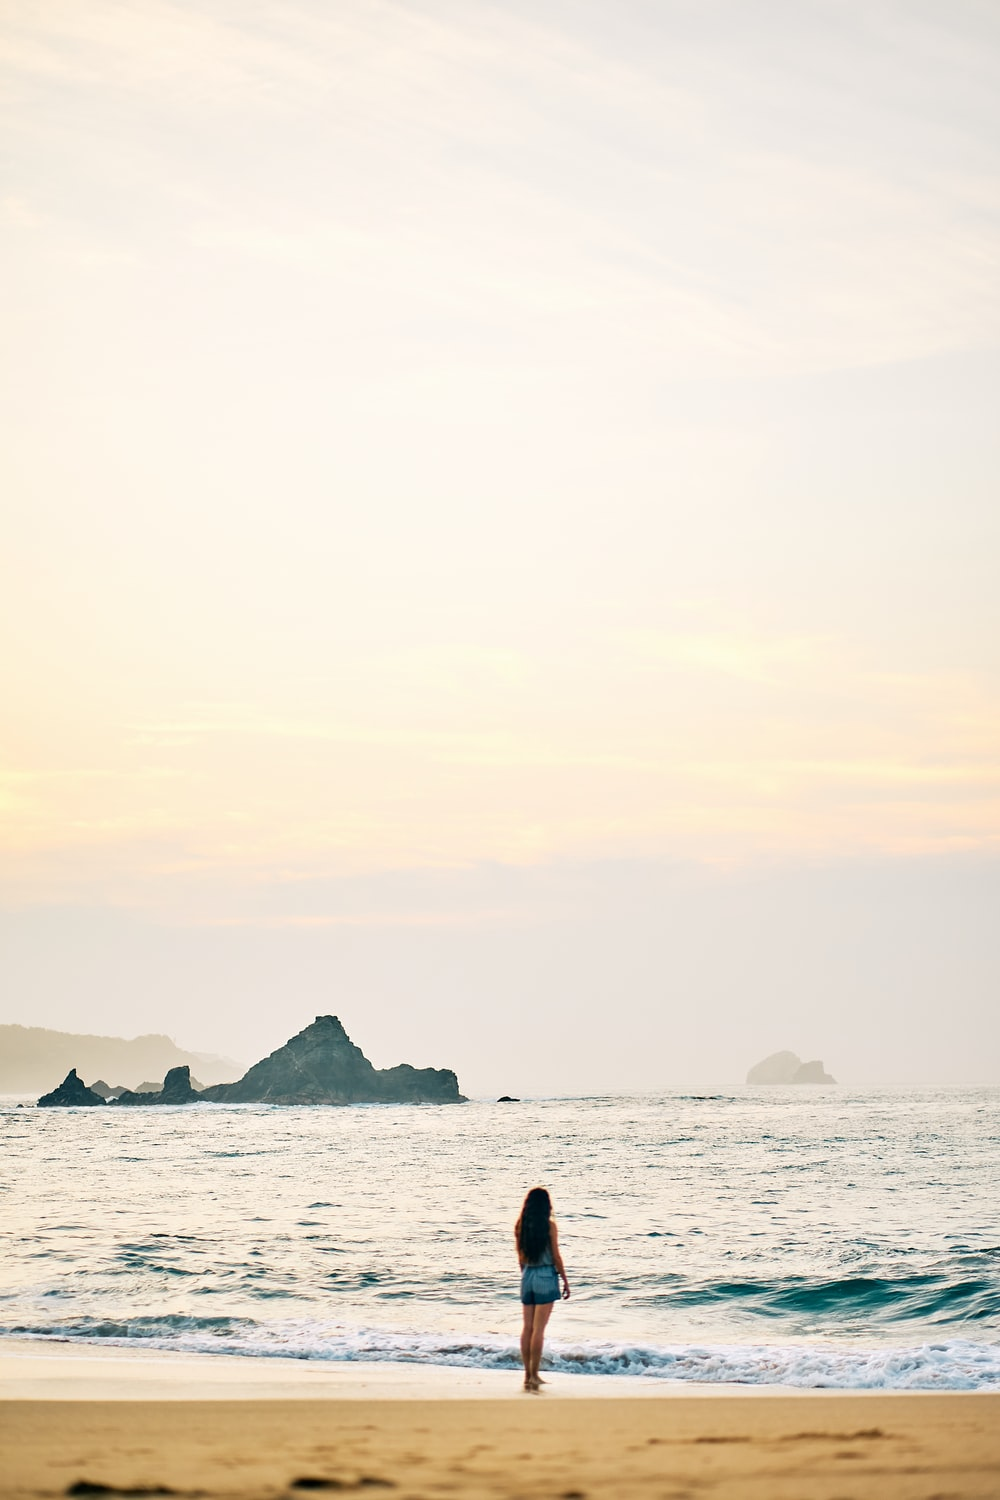 silhouette of person standing on sea shore during daytime